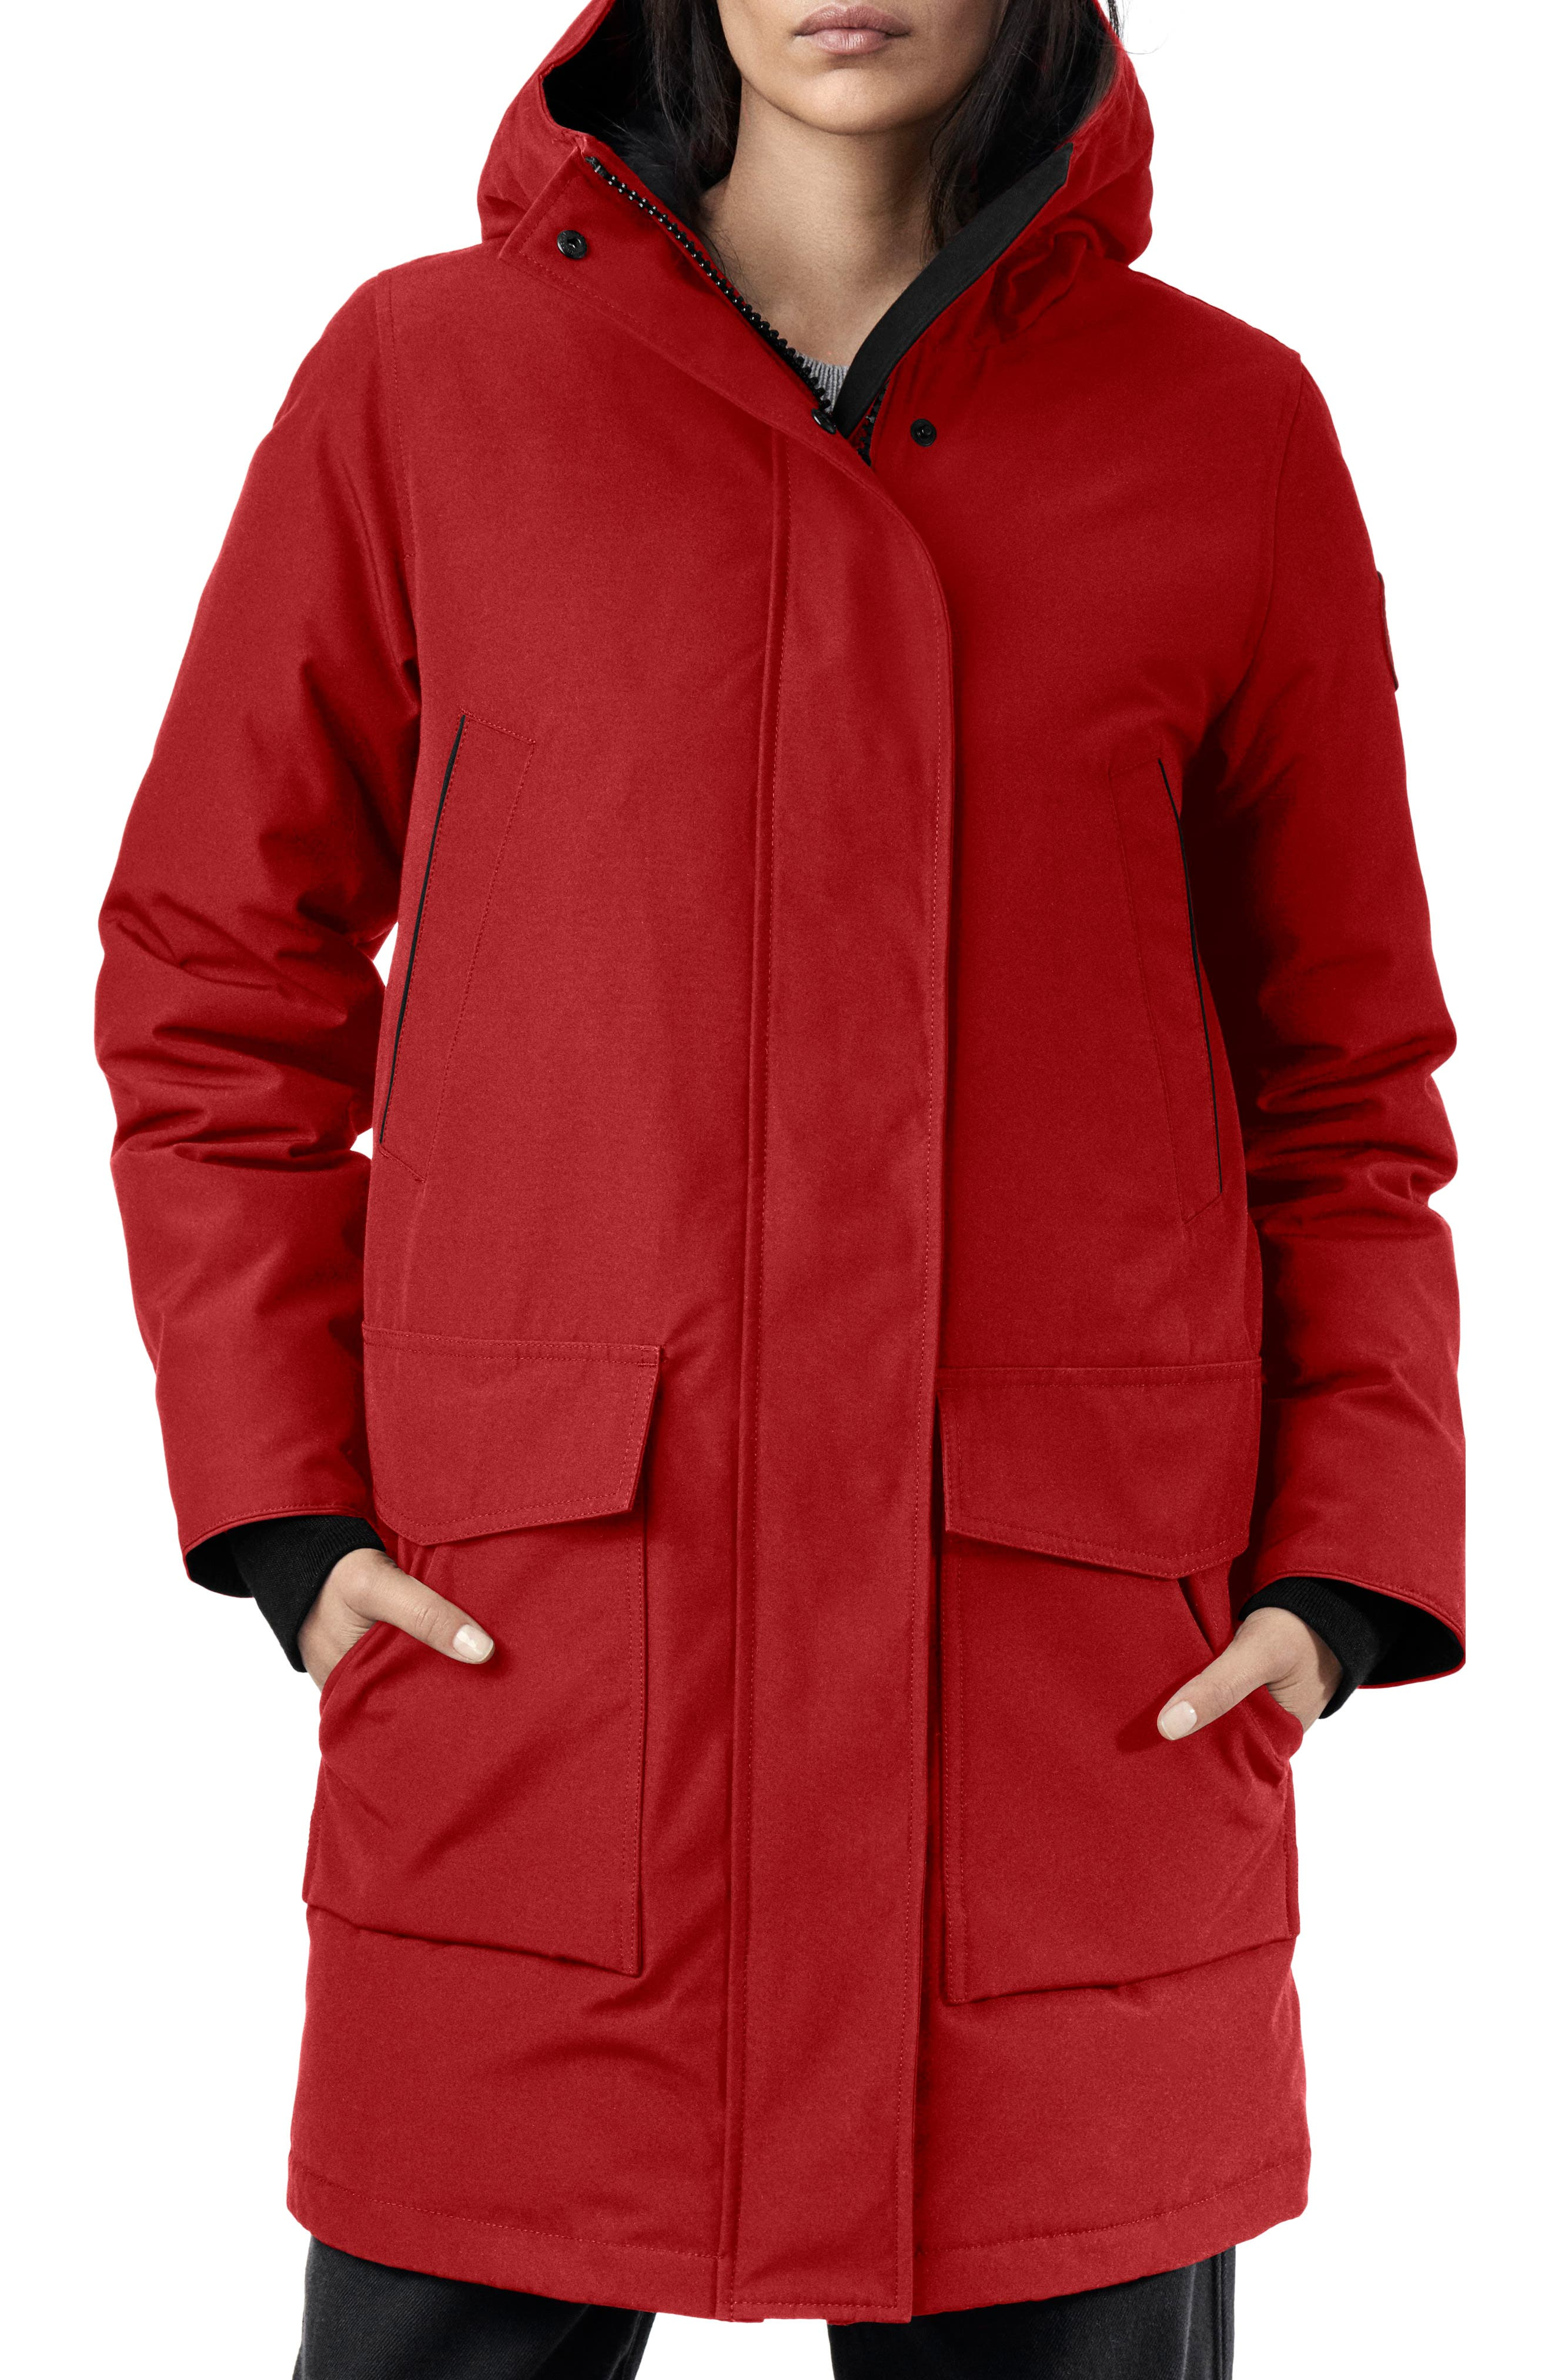 Canada Goose Canmore 625 Fill Power Down Parka, (10-12) - Red